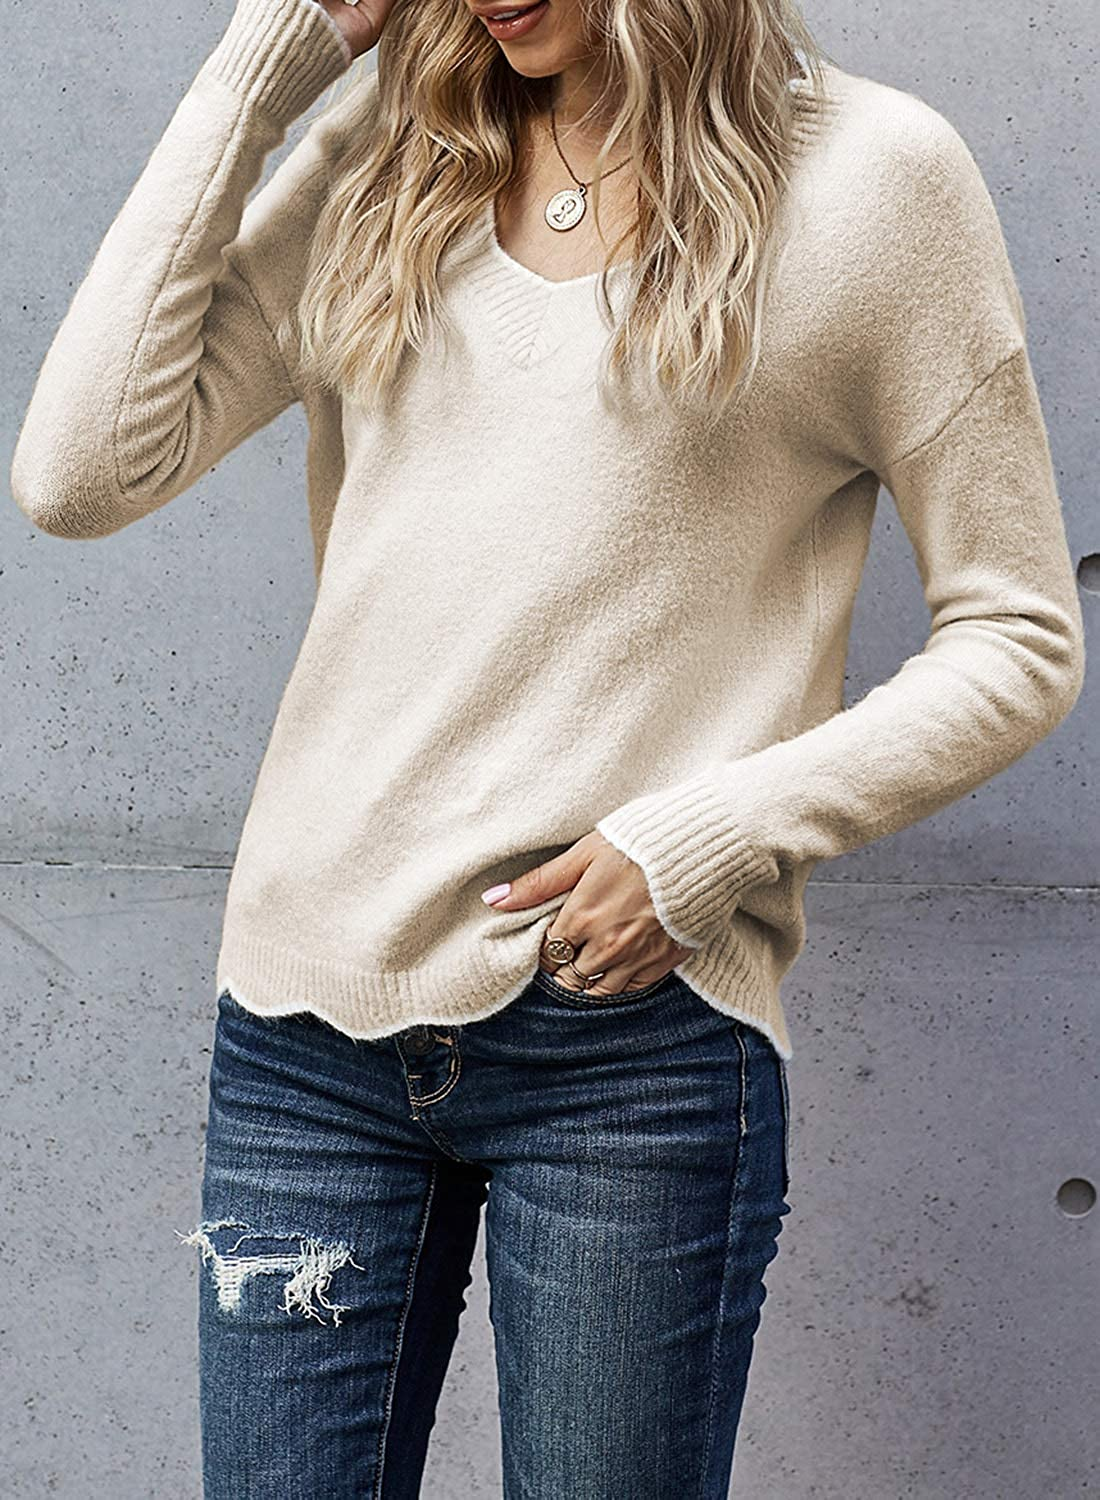 Elapsy Womens Casual Wavy V Neck Knit Sweaters Long Sleeve Casual Pullover Tops